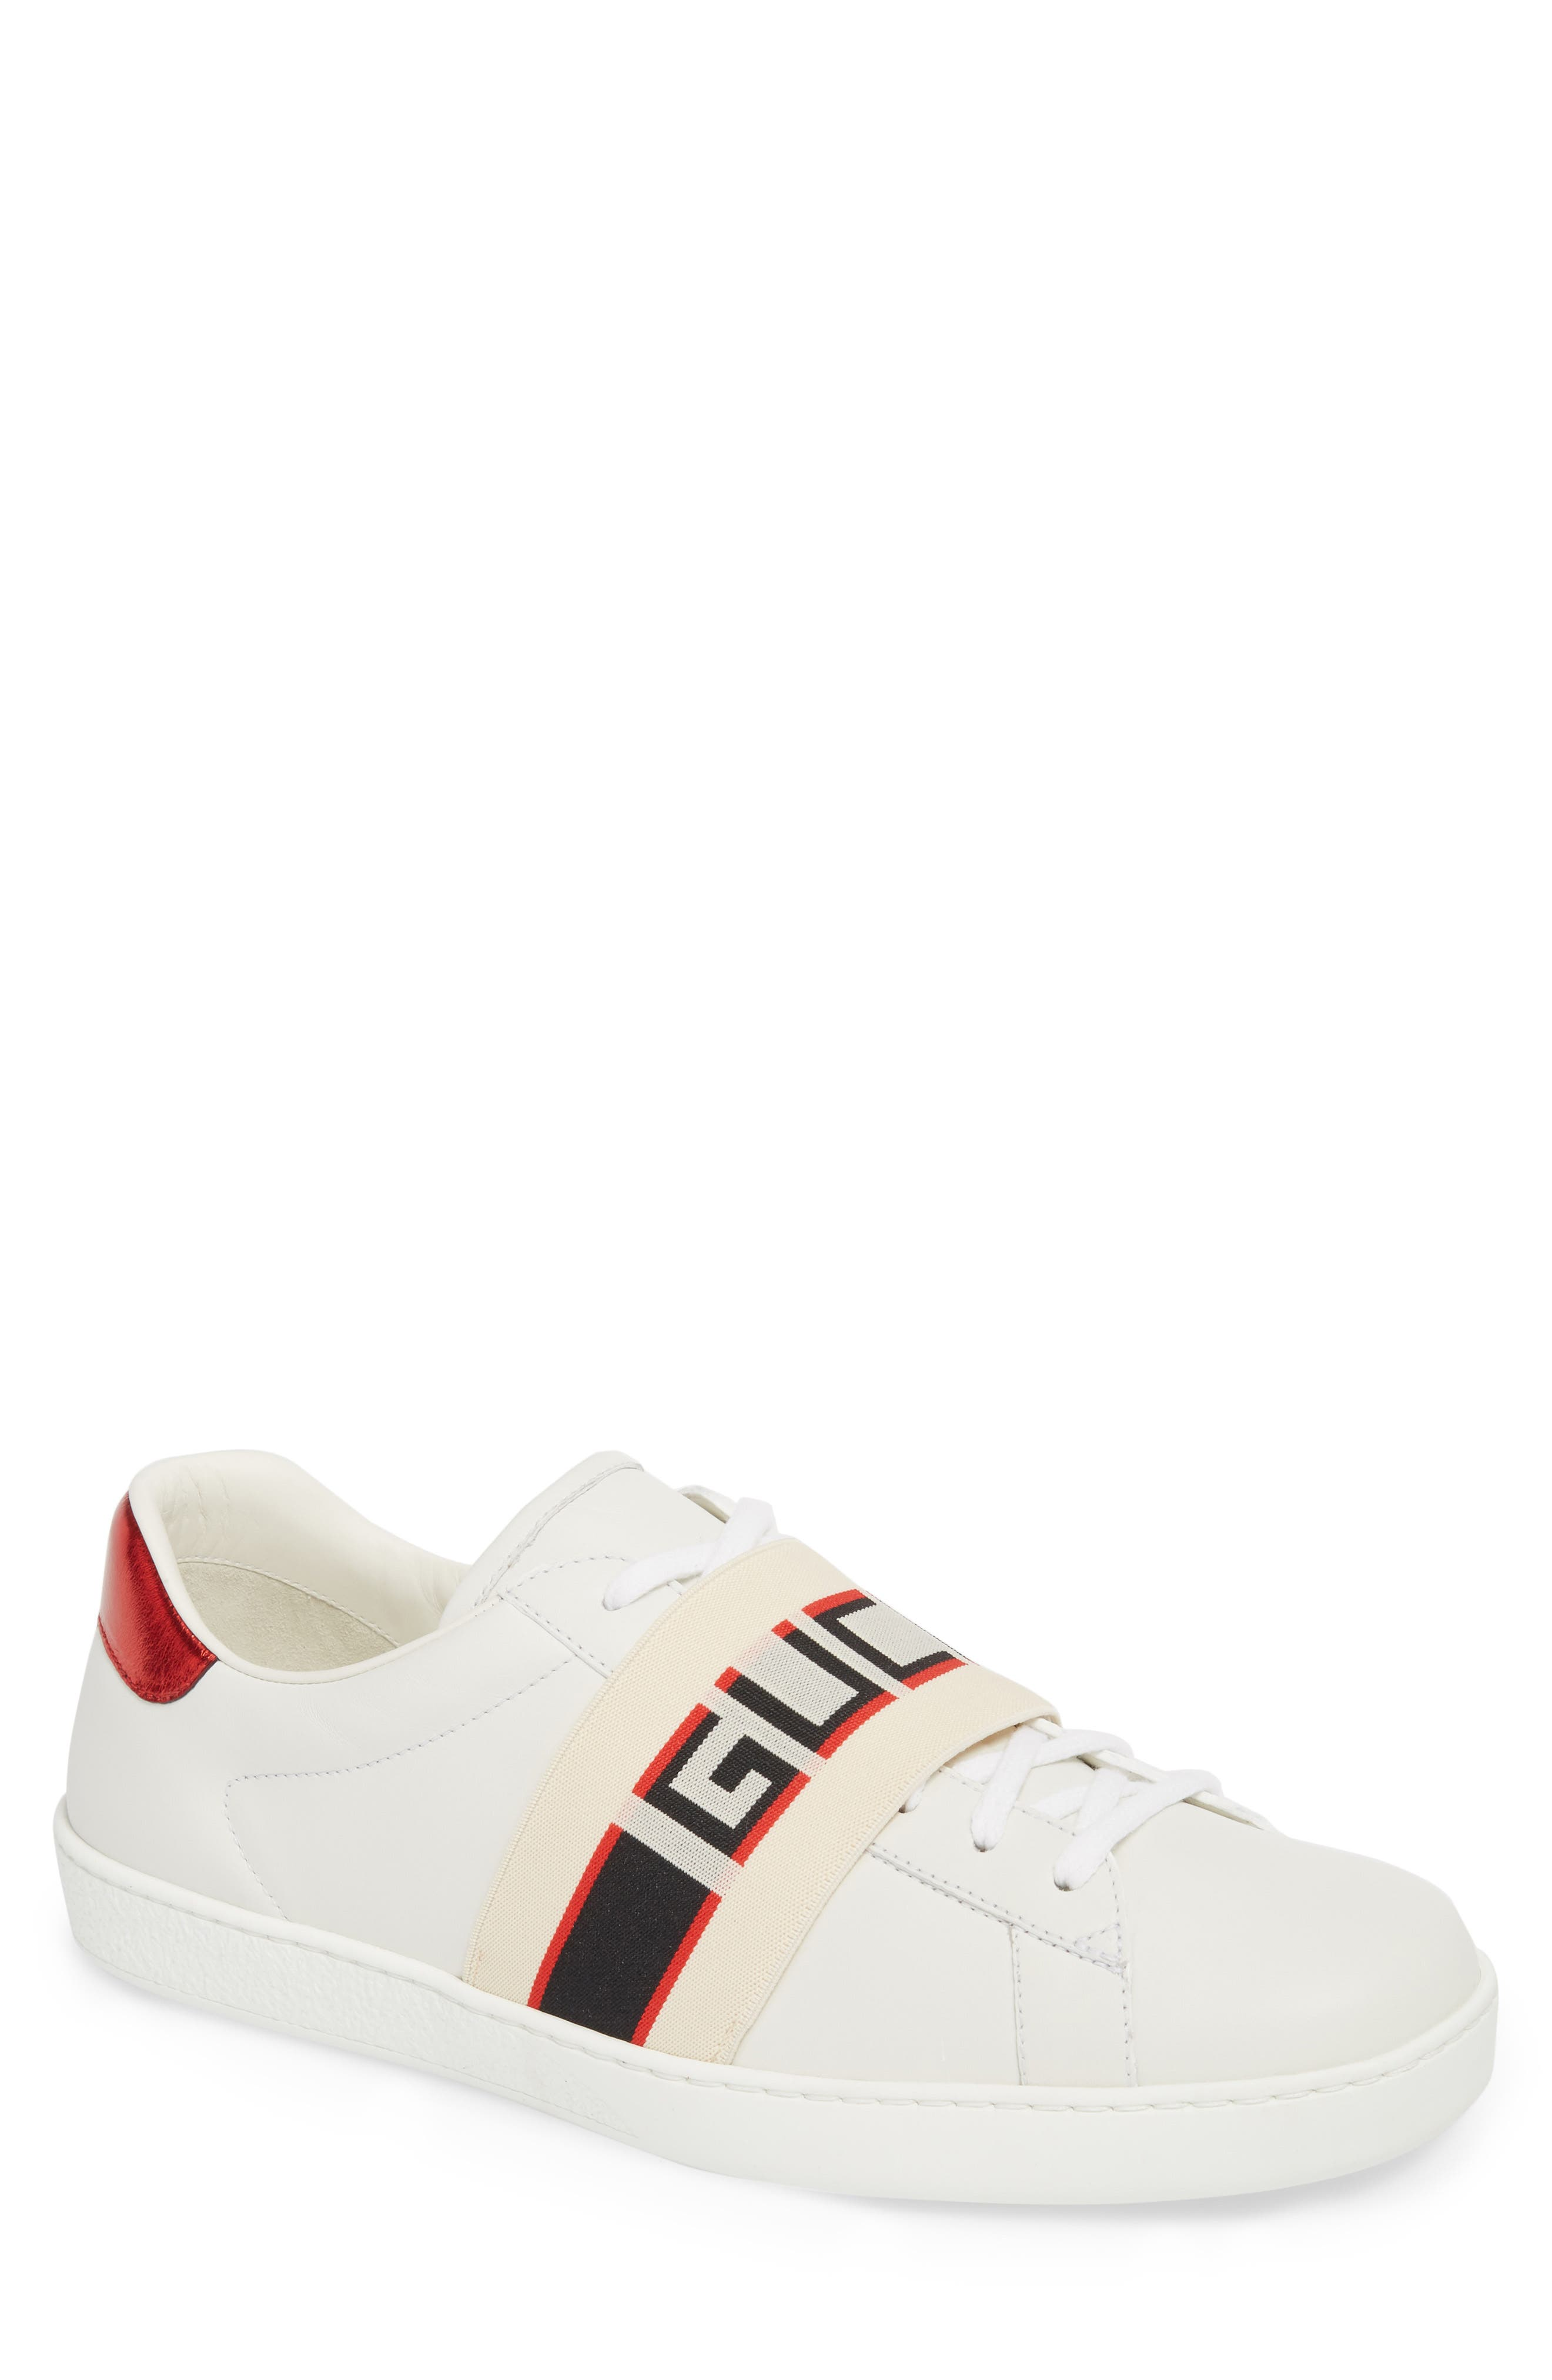 New Ace Stripe Leather Sneaker,                             Main thumbnail 1, color,                             BIANCO/ WHITE FLAME